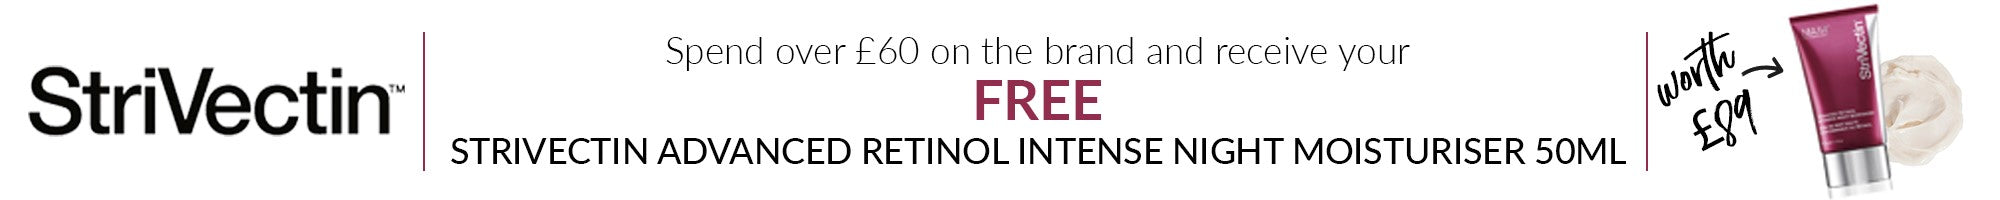 Strivectin free gift with purchase